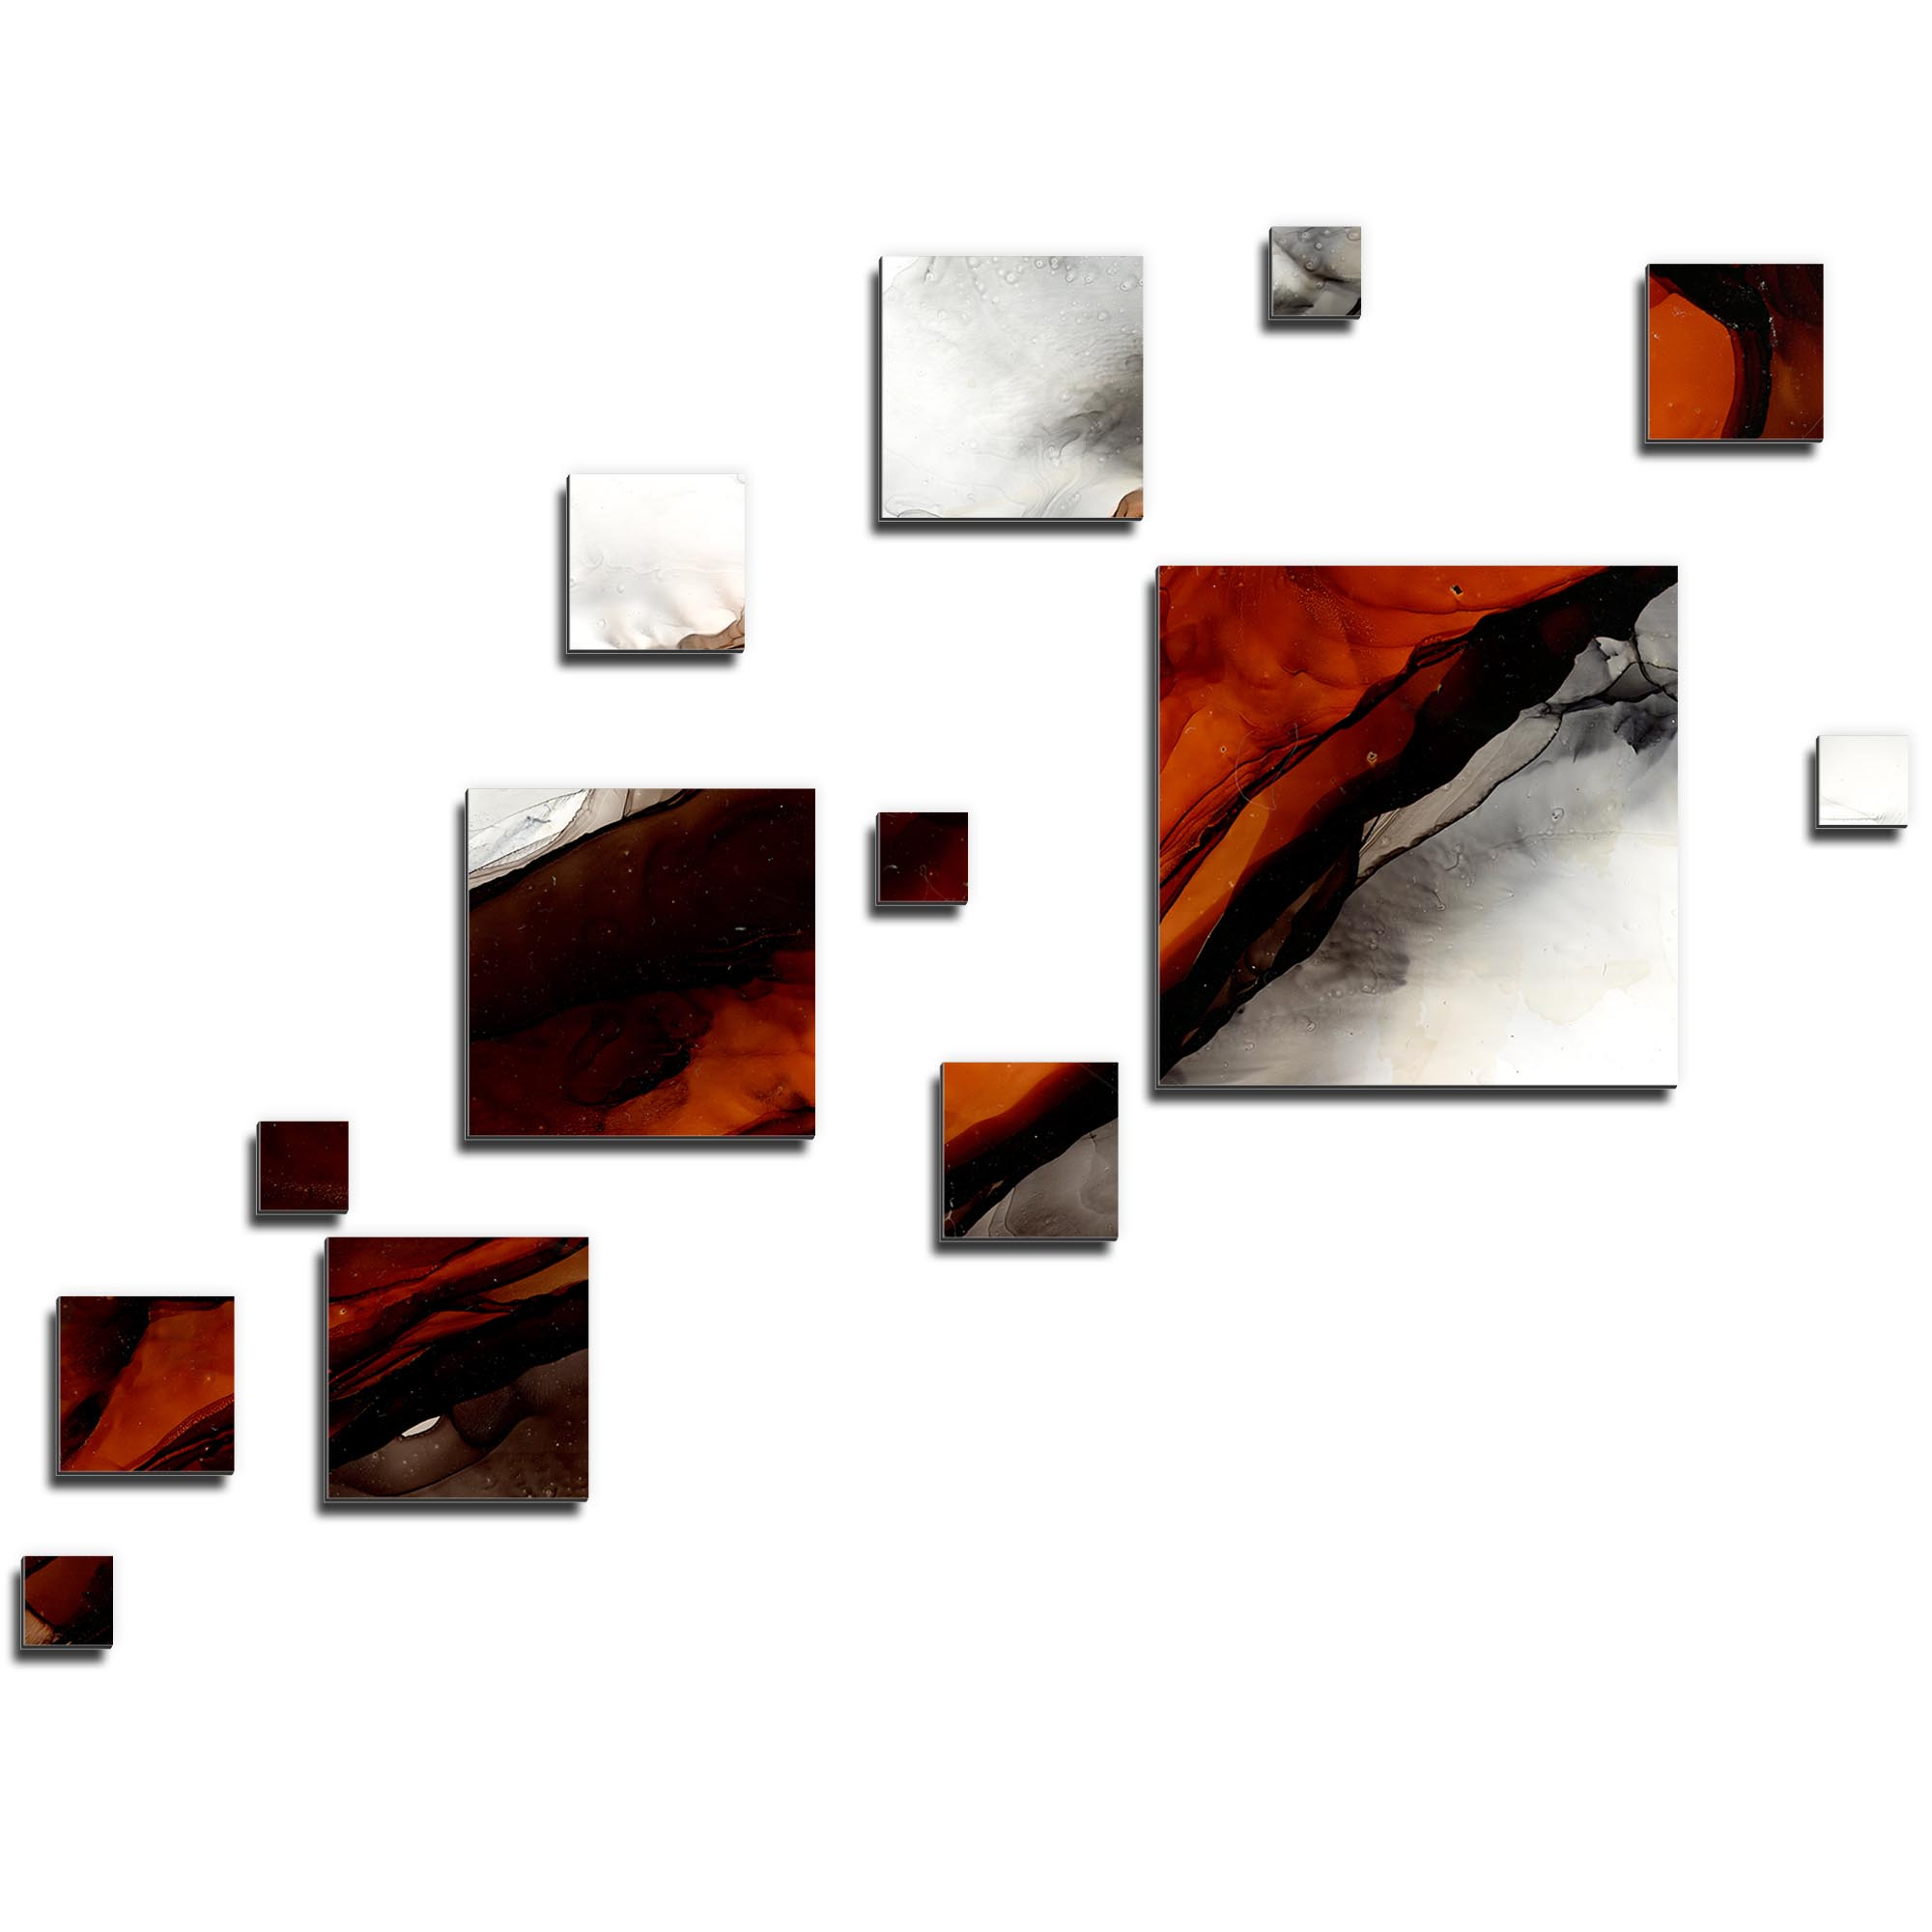 NAY 'Pixels Rust' 66in x 50in Squares Abstract Art on Aluminum Composite